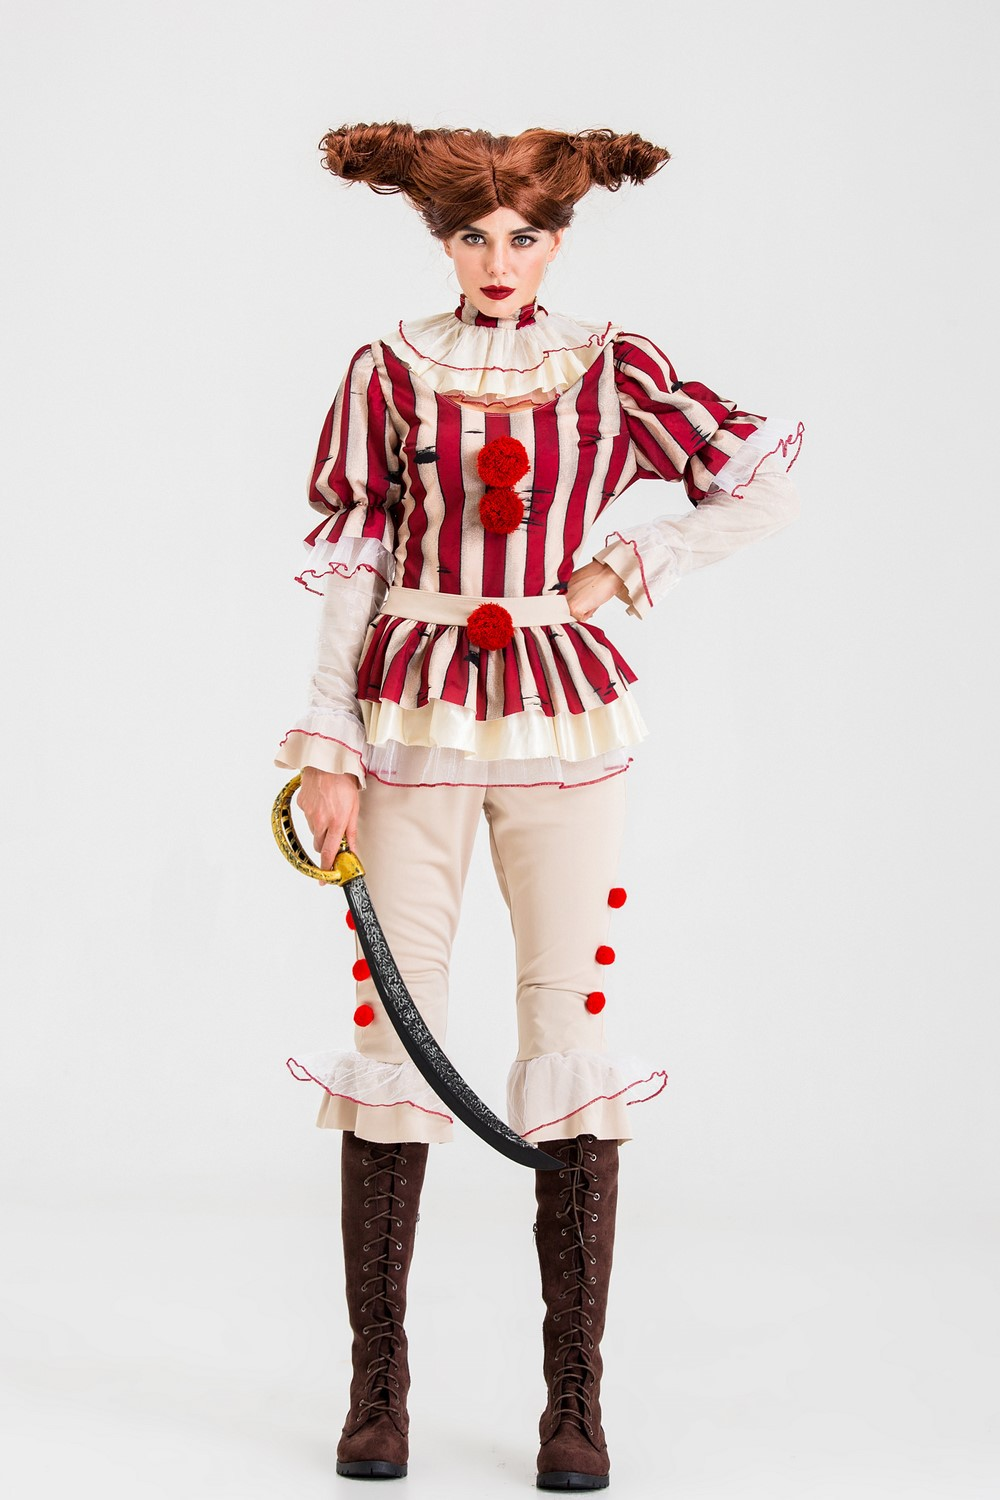 Costume role play suit, game uniform, circus stage costume, Halloween cosplay, clowns soul returning woman